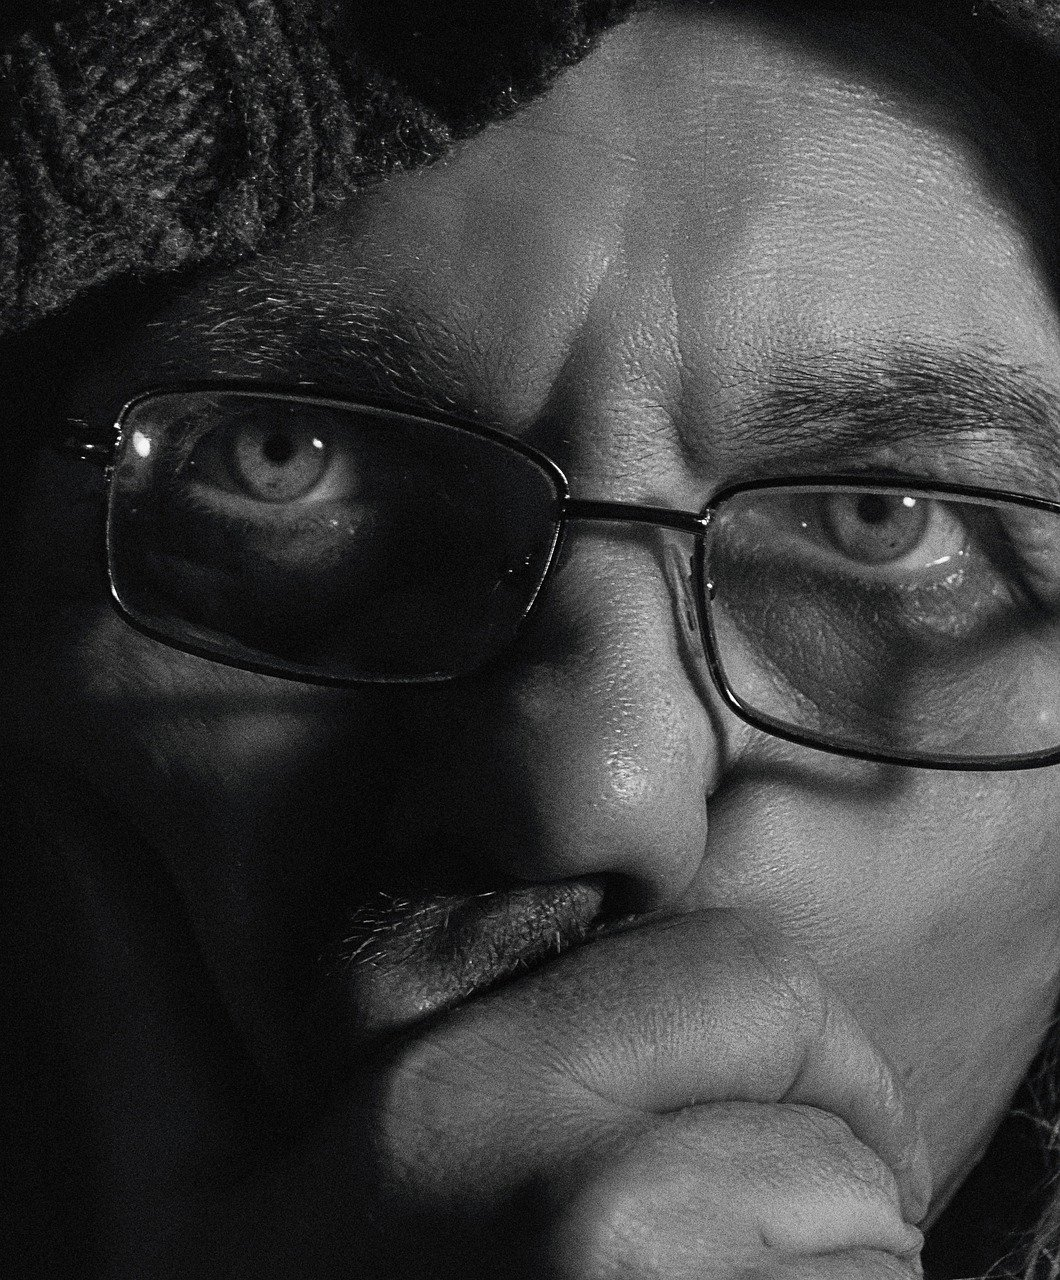 A black-and-white close-up image of a shocked man covering his mouth while wearing glasses and a hat   Photo: Pixabay/Alexander Krivitskiy